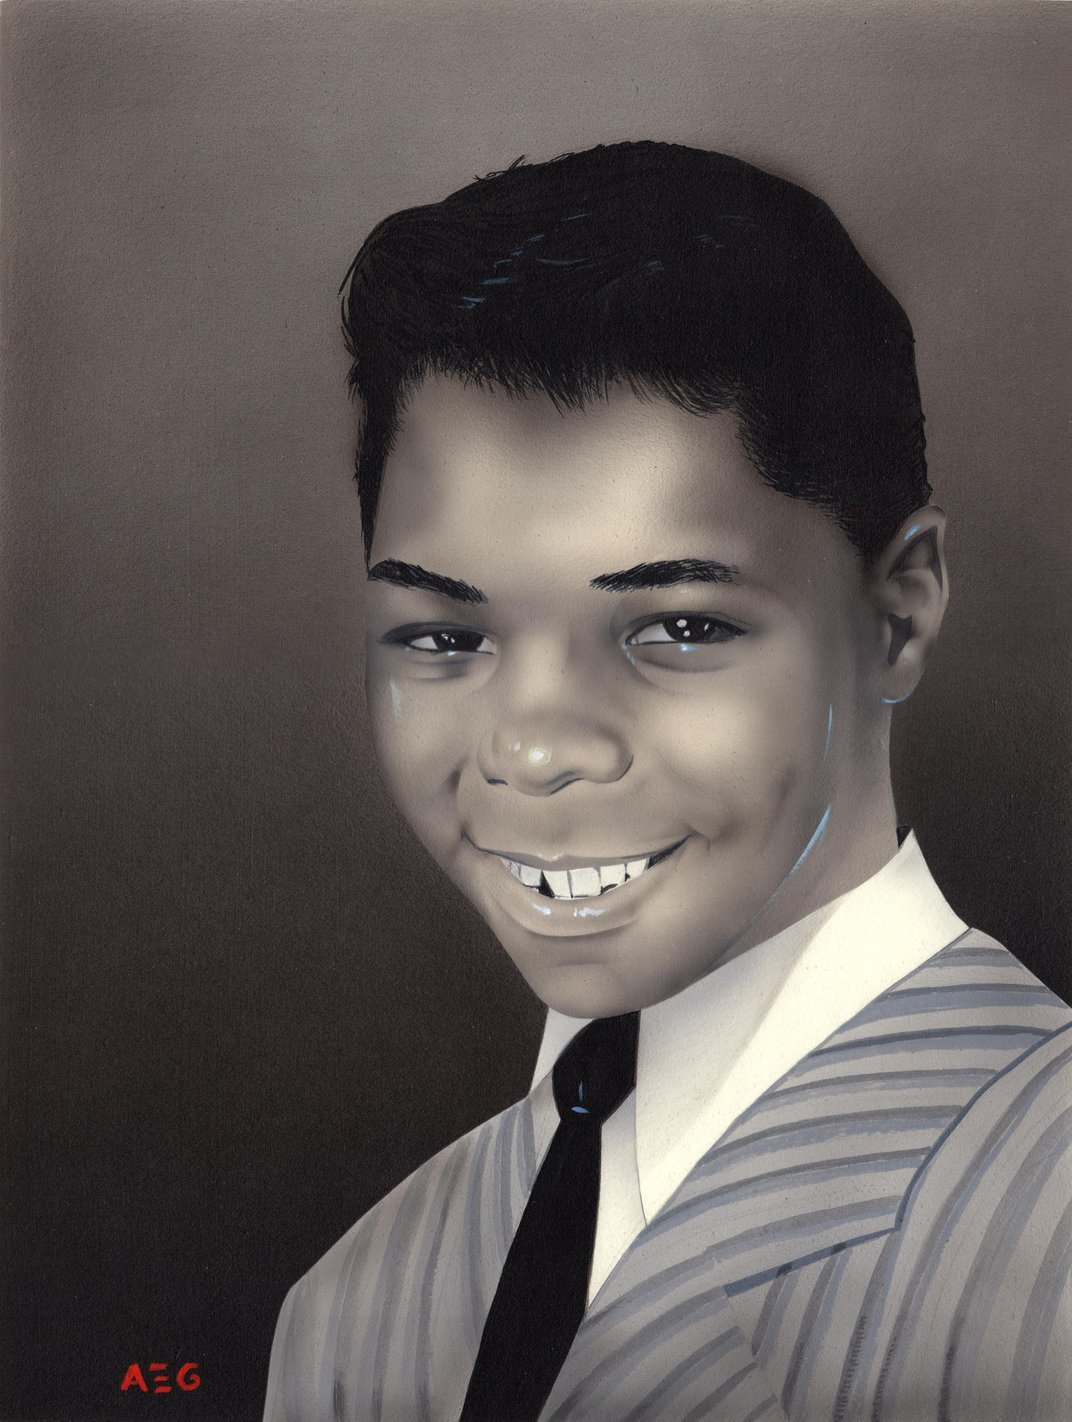 Teen Idol Frankie Lymon's Tragic Rise and Fall Tells the Truth About 1950s America